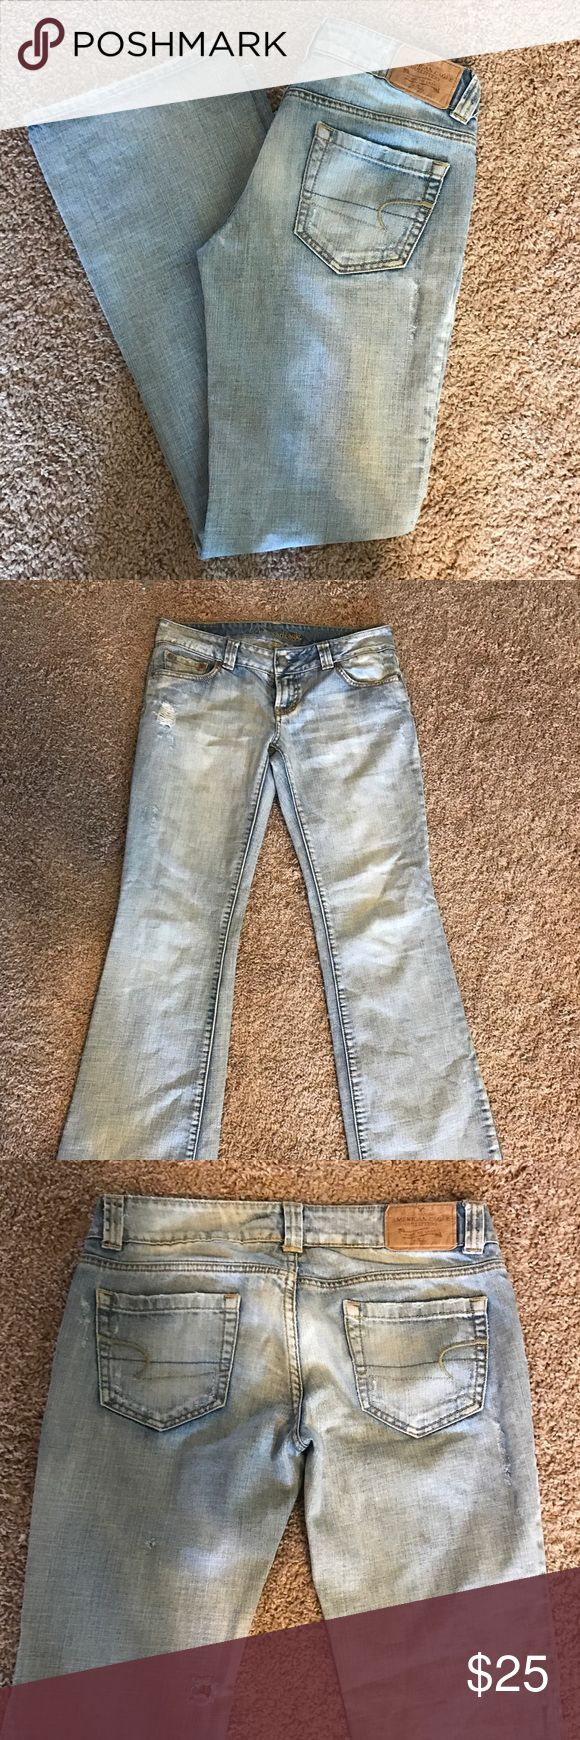 American Eagle Outfitters Jeans American Eagle Jeans - Boyfriend 77                                            Size: 6 REG American Eagle Outfitters Jeans Boyfriend